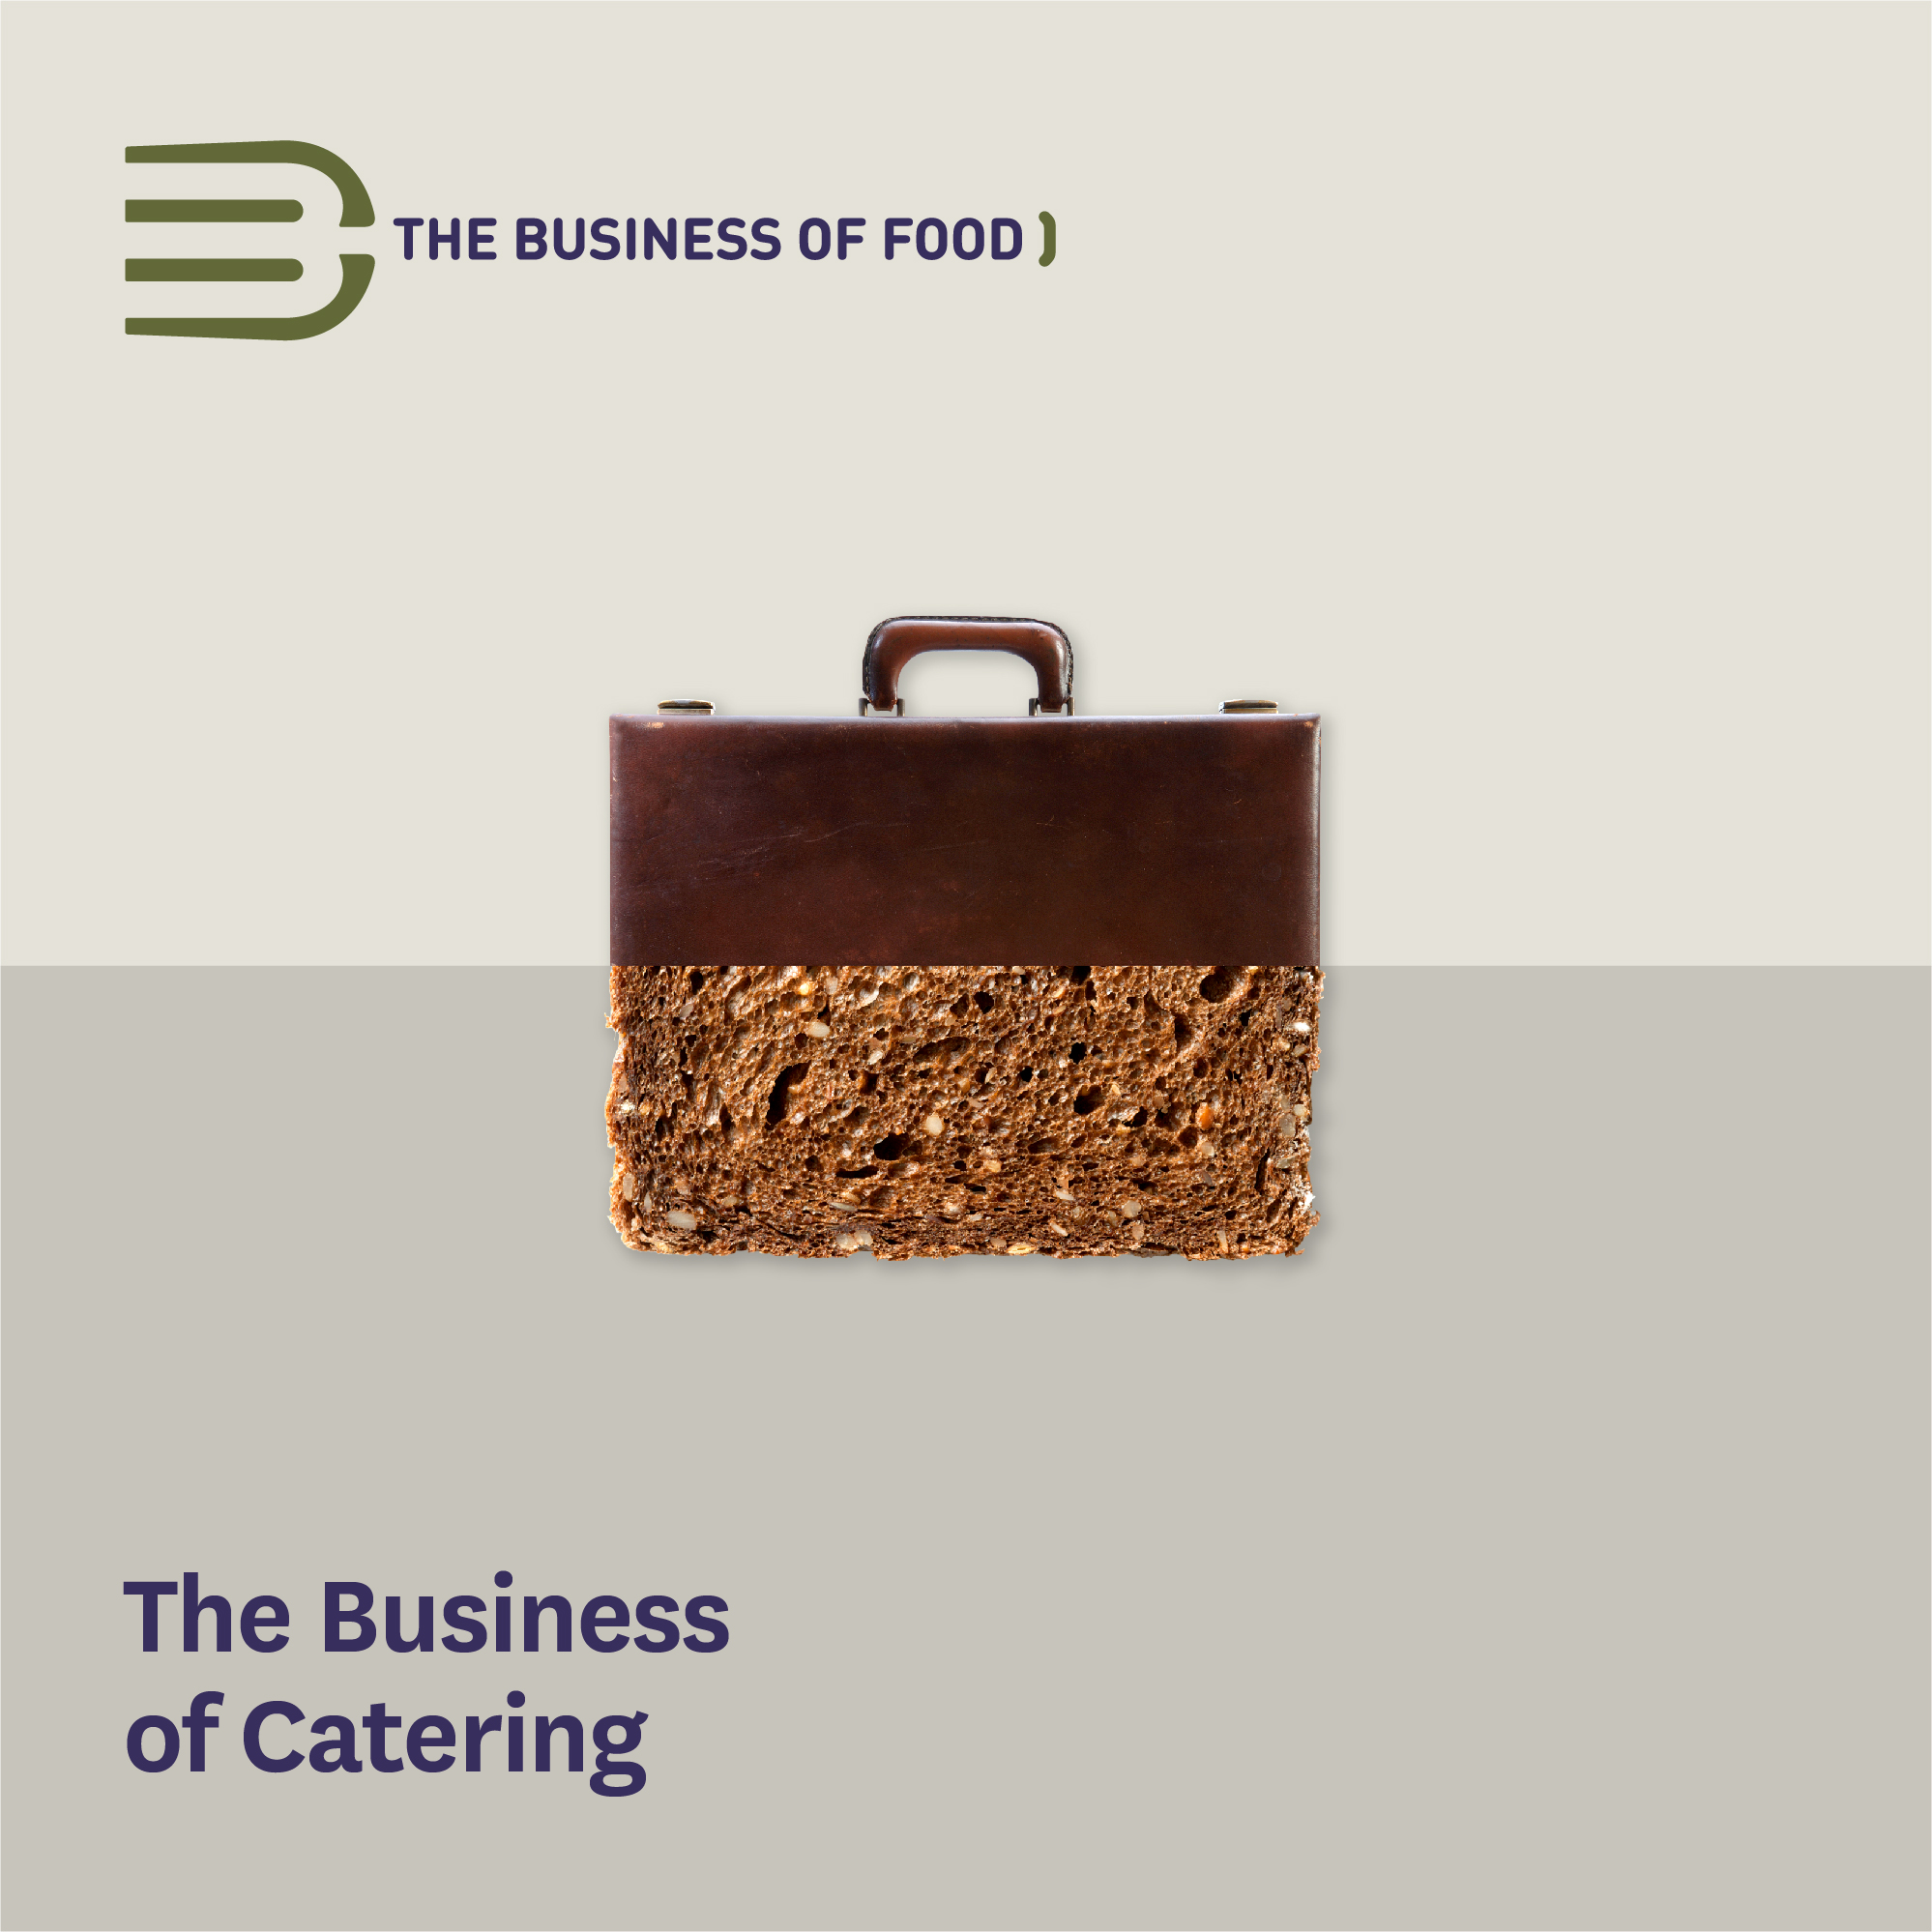 The Business of Catering (October) from NOTS.ie